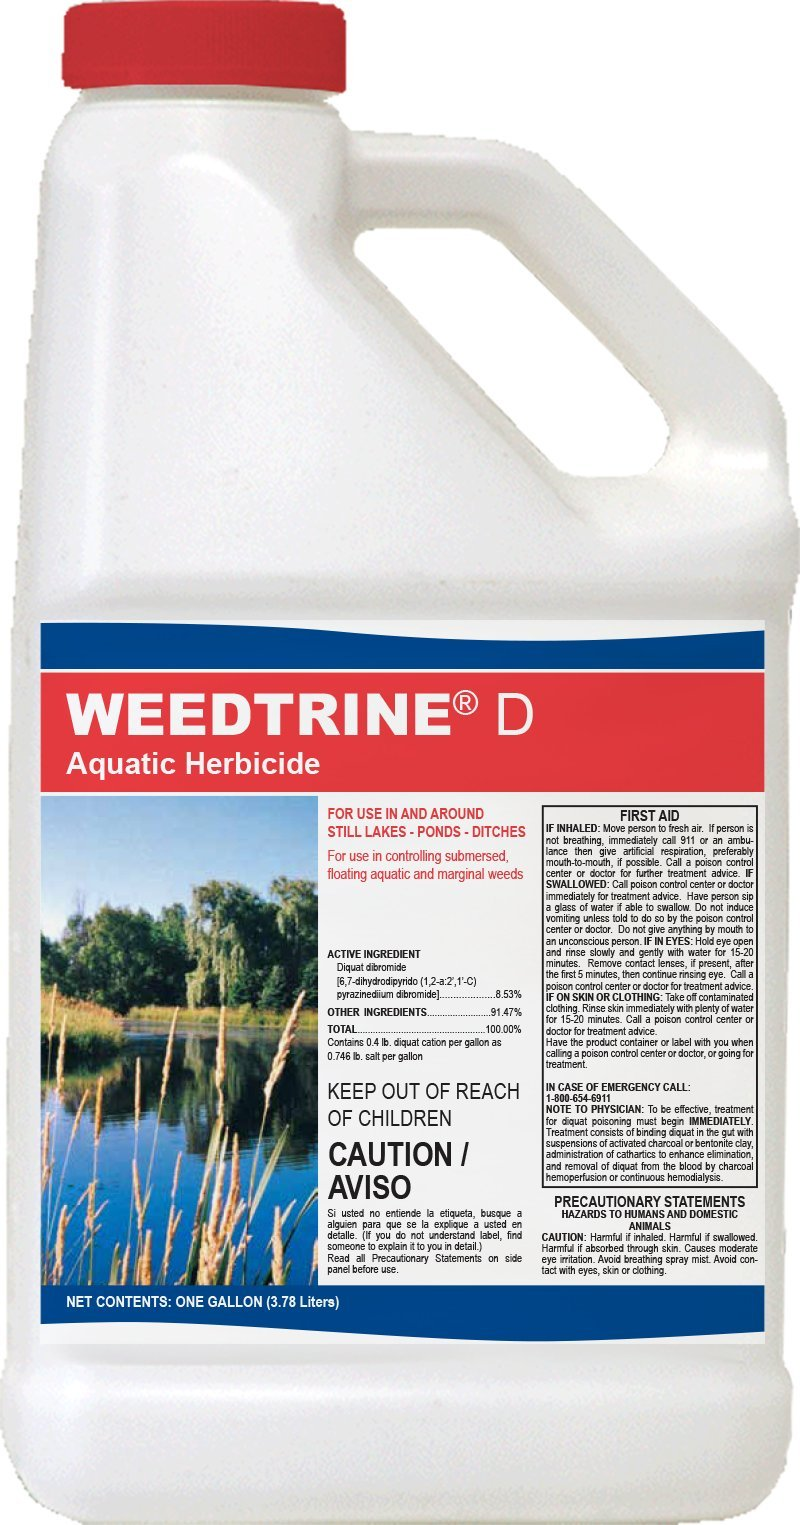 Applied Biochemists 390304A Weedtrine D Aquatic Herbicide, 1 gallon